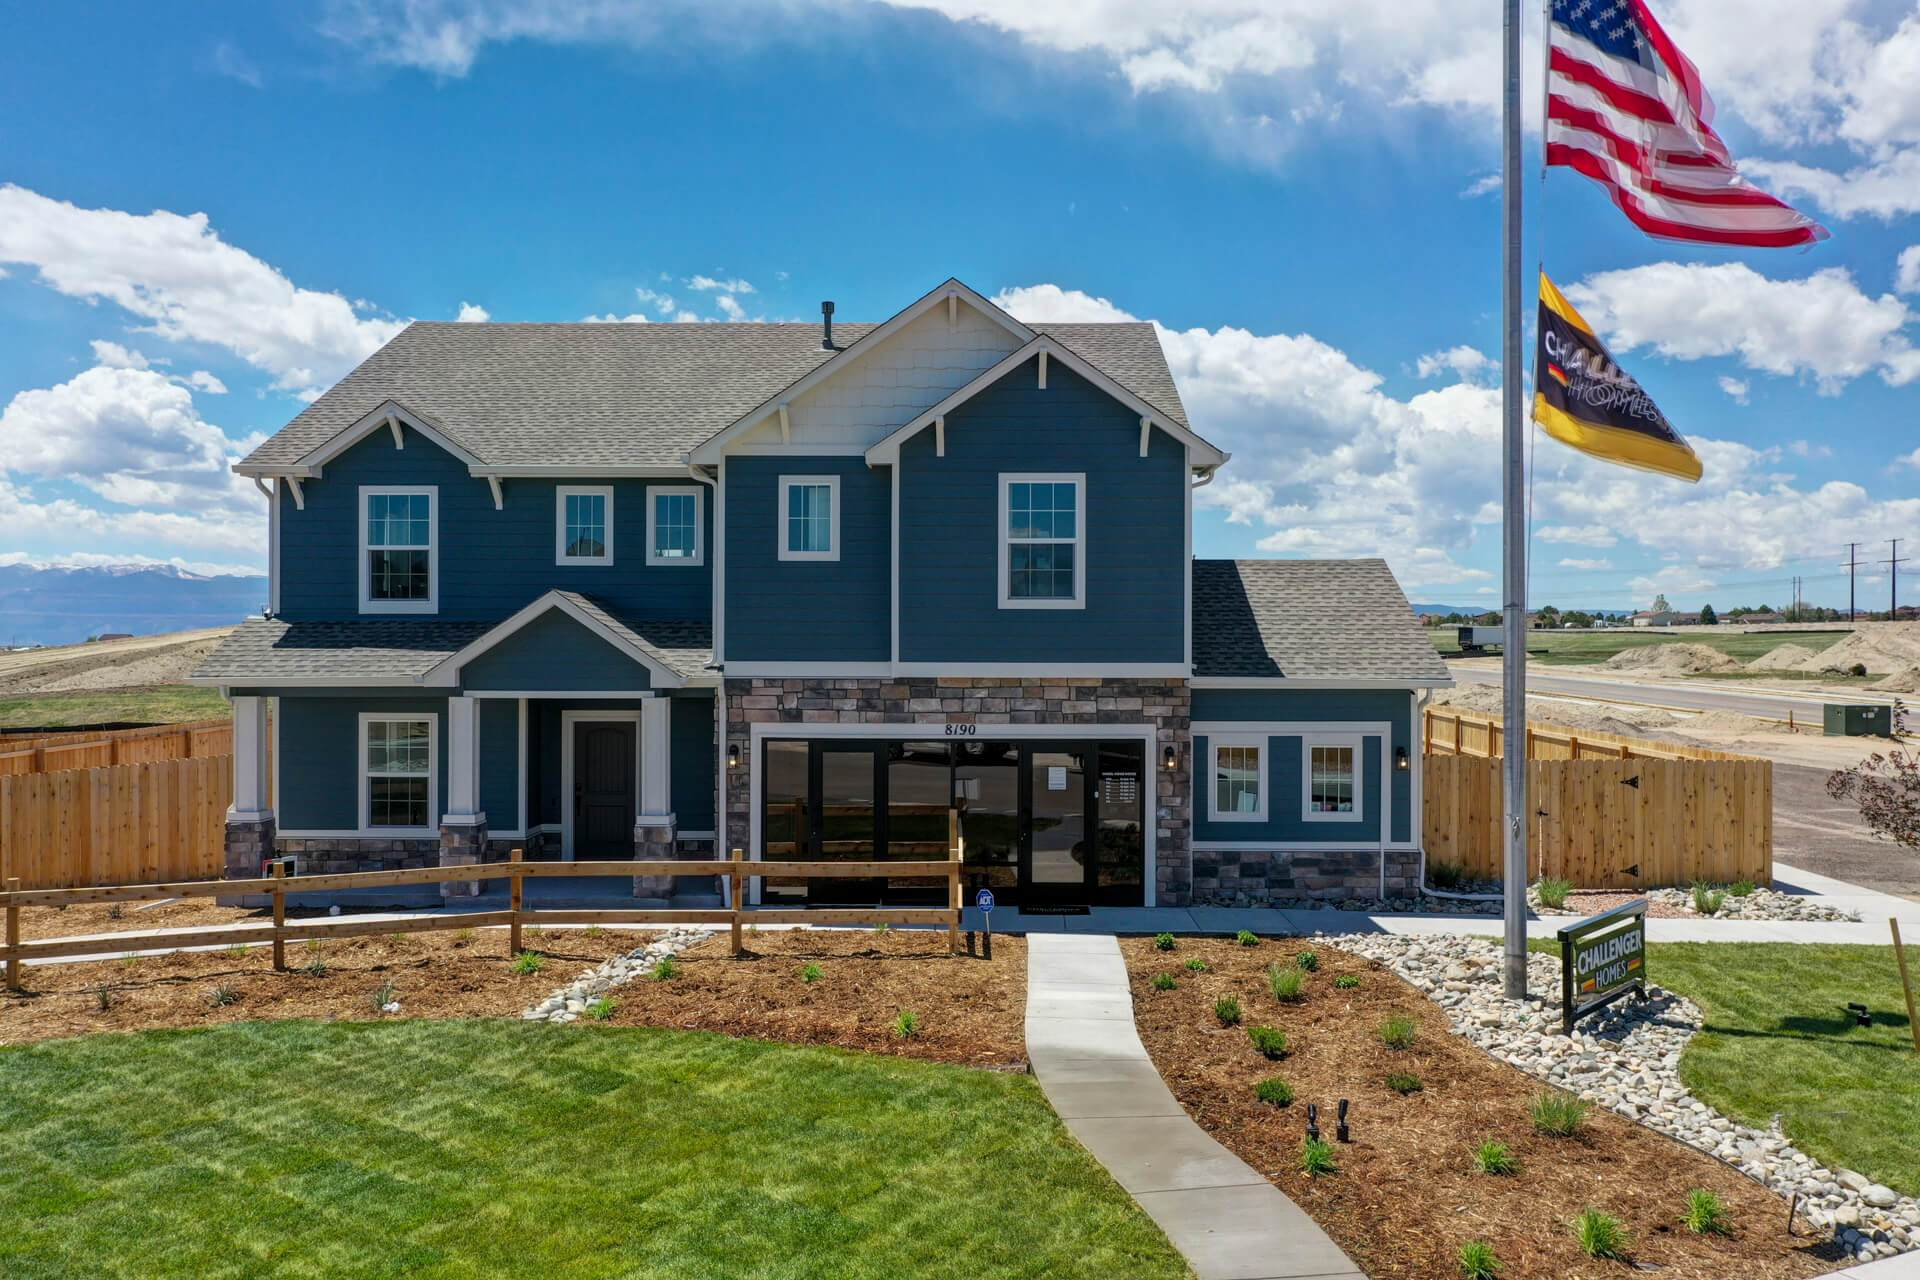 'Falcon Meadows at Bent Grass' by Challenger Homes in Colorado Springs